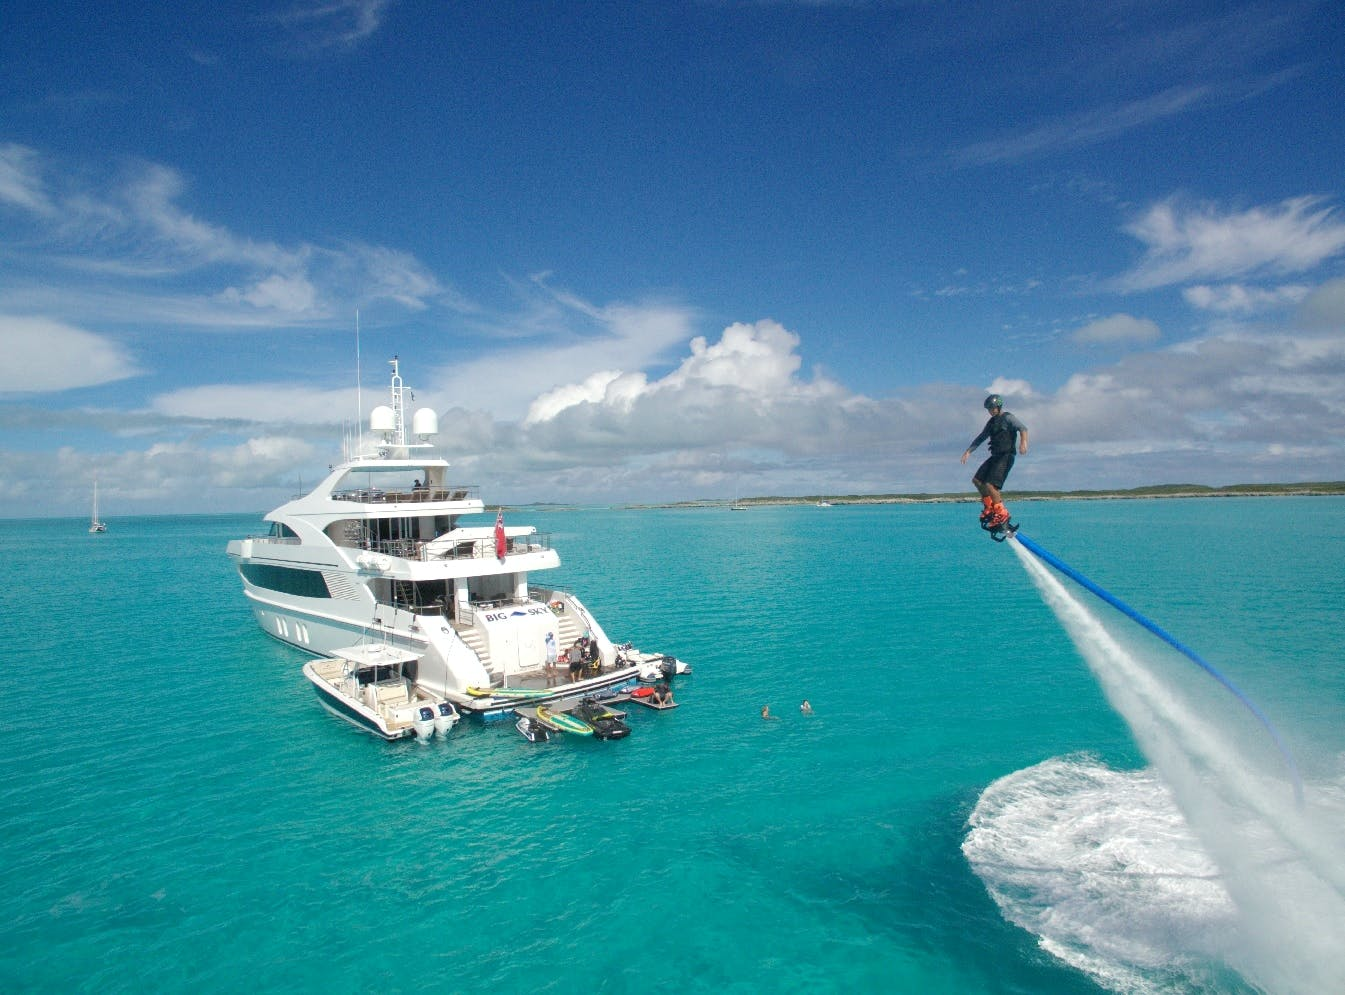 Guest jet packing next to charter yacht BIG SKY on water.